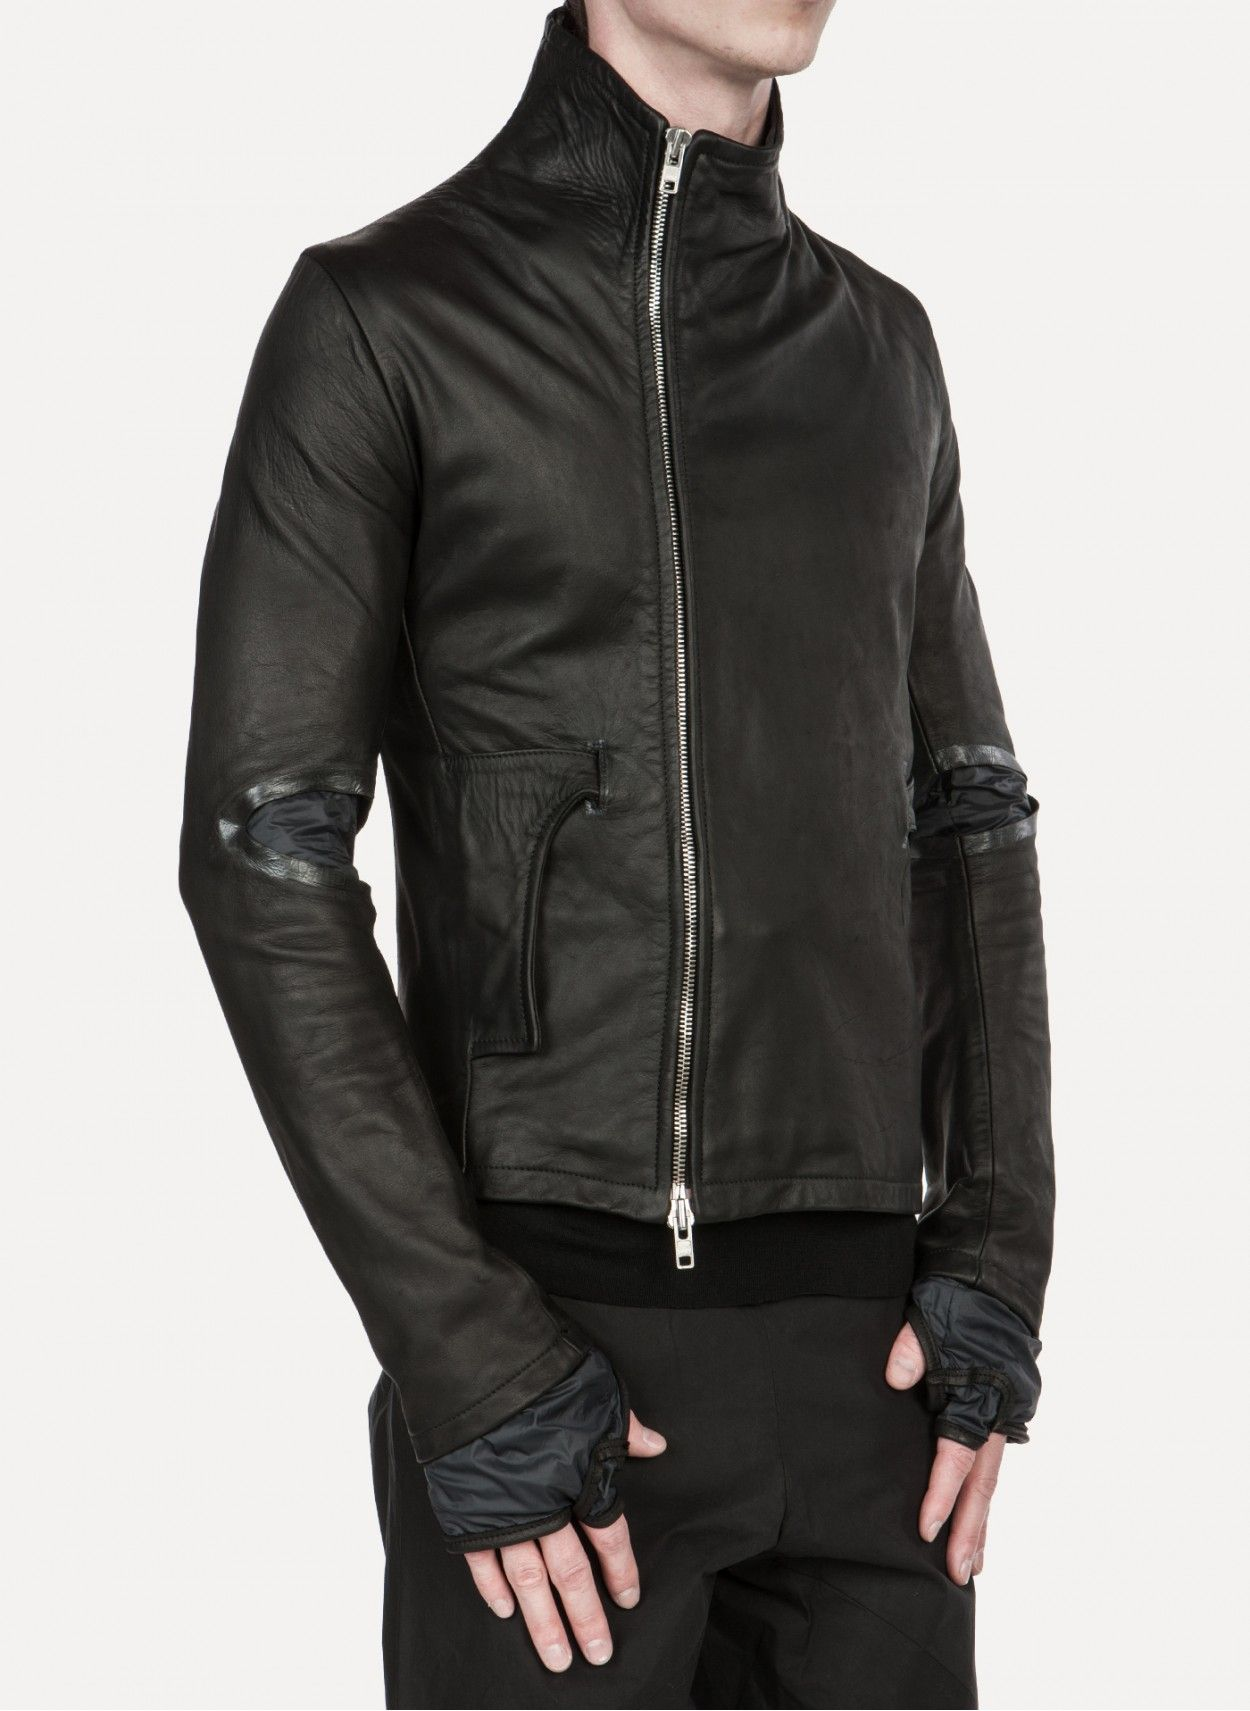 Dustrial Inc Leather Jacket Style Best Leather Jackets Leather Jacket Men [ 1711 x 1250 Pixel ]